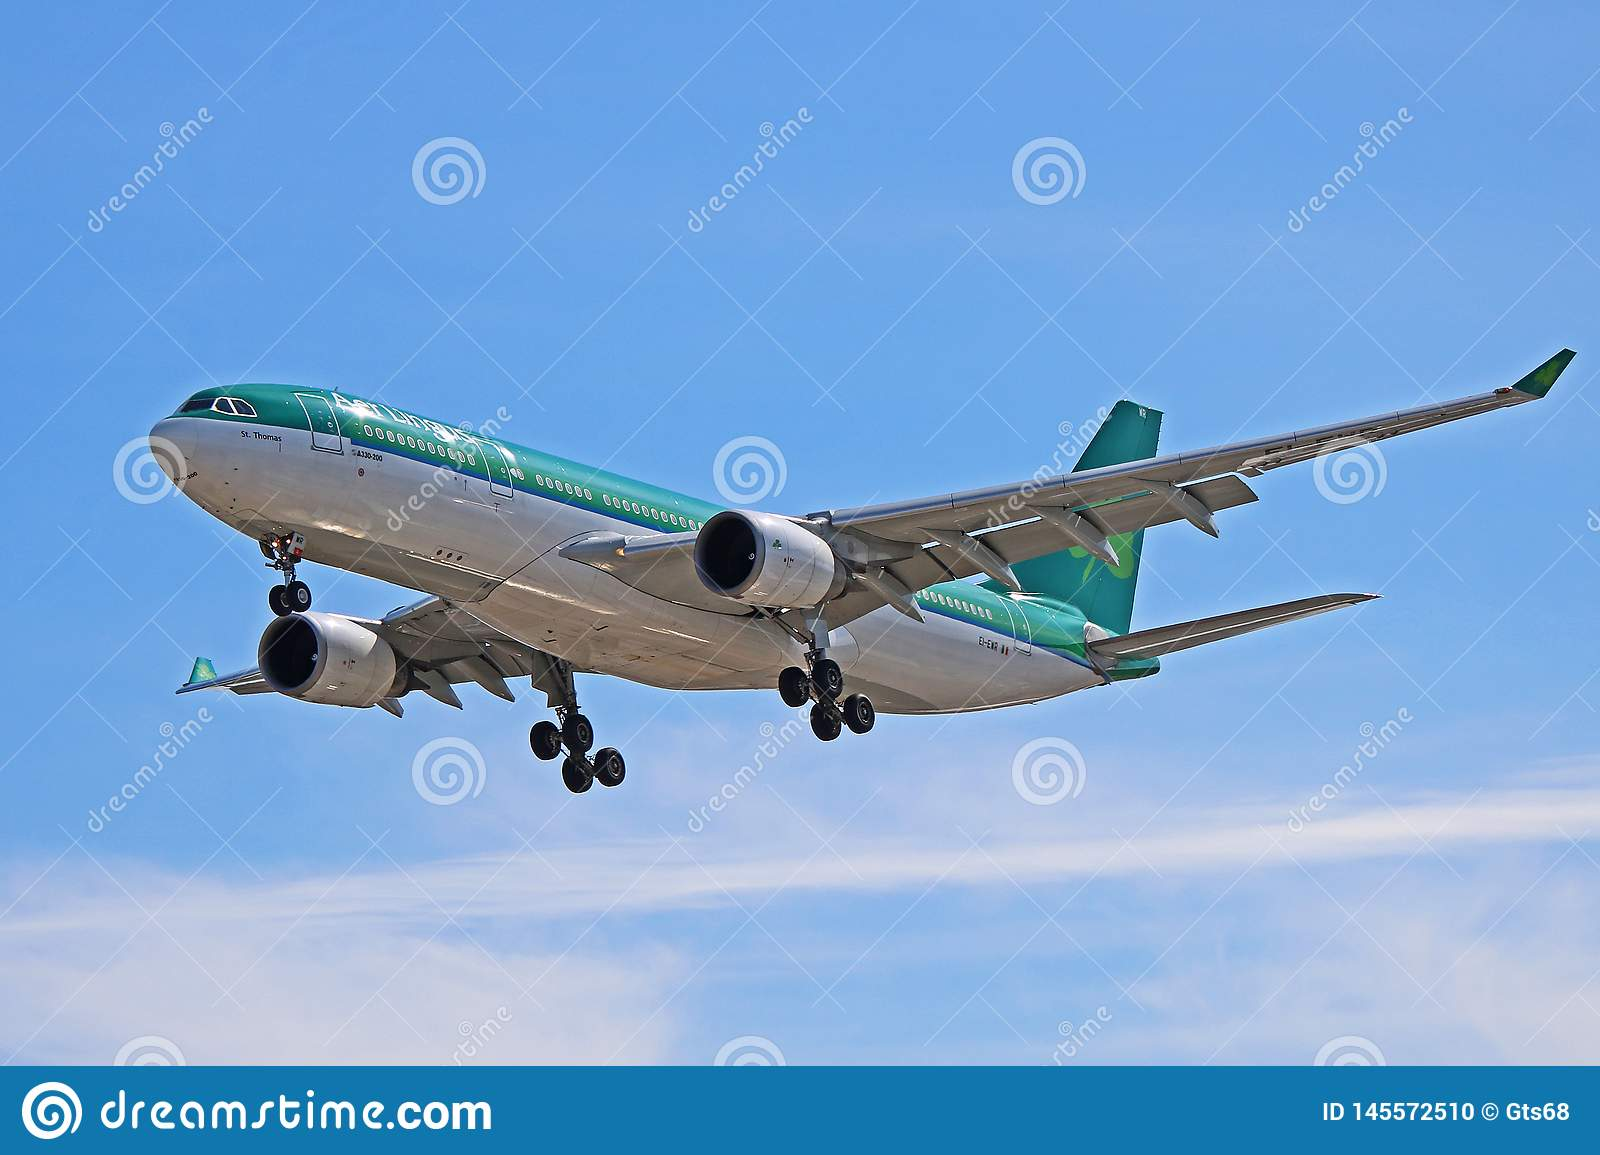 An Aer Lingus Airbus A330-200 On Final Approach